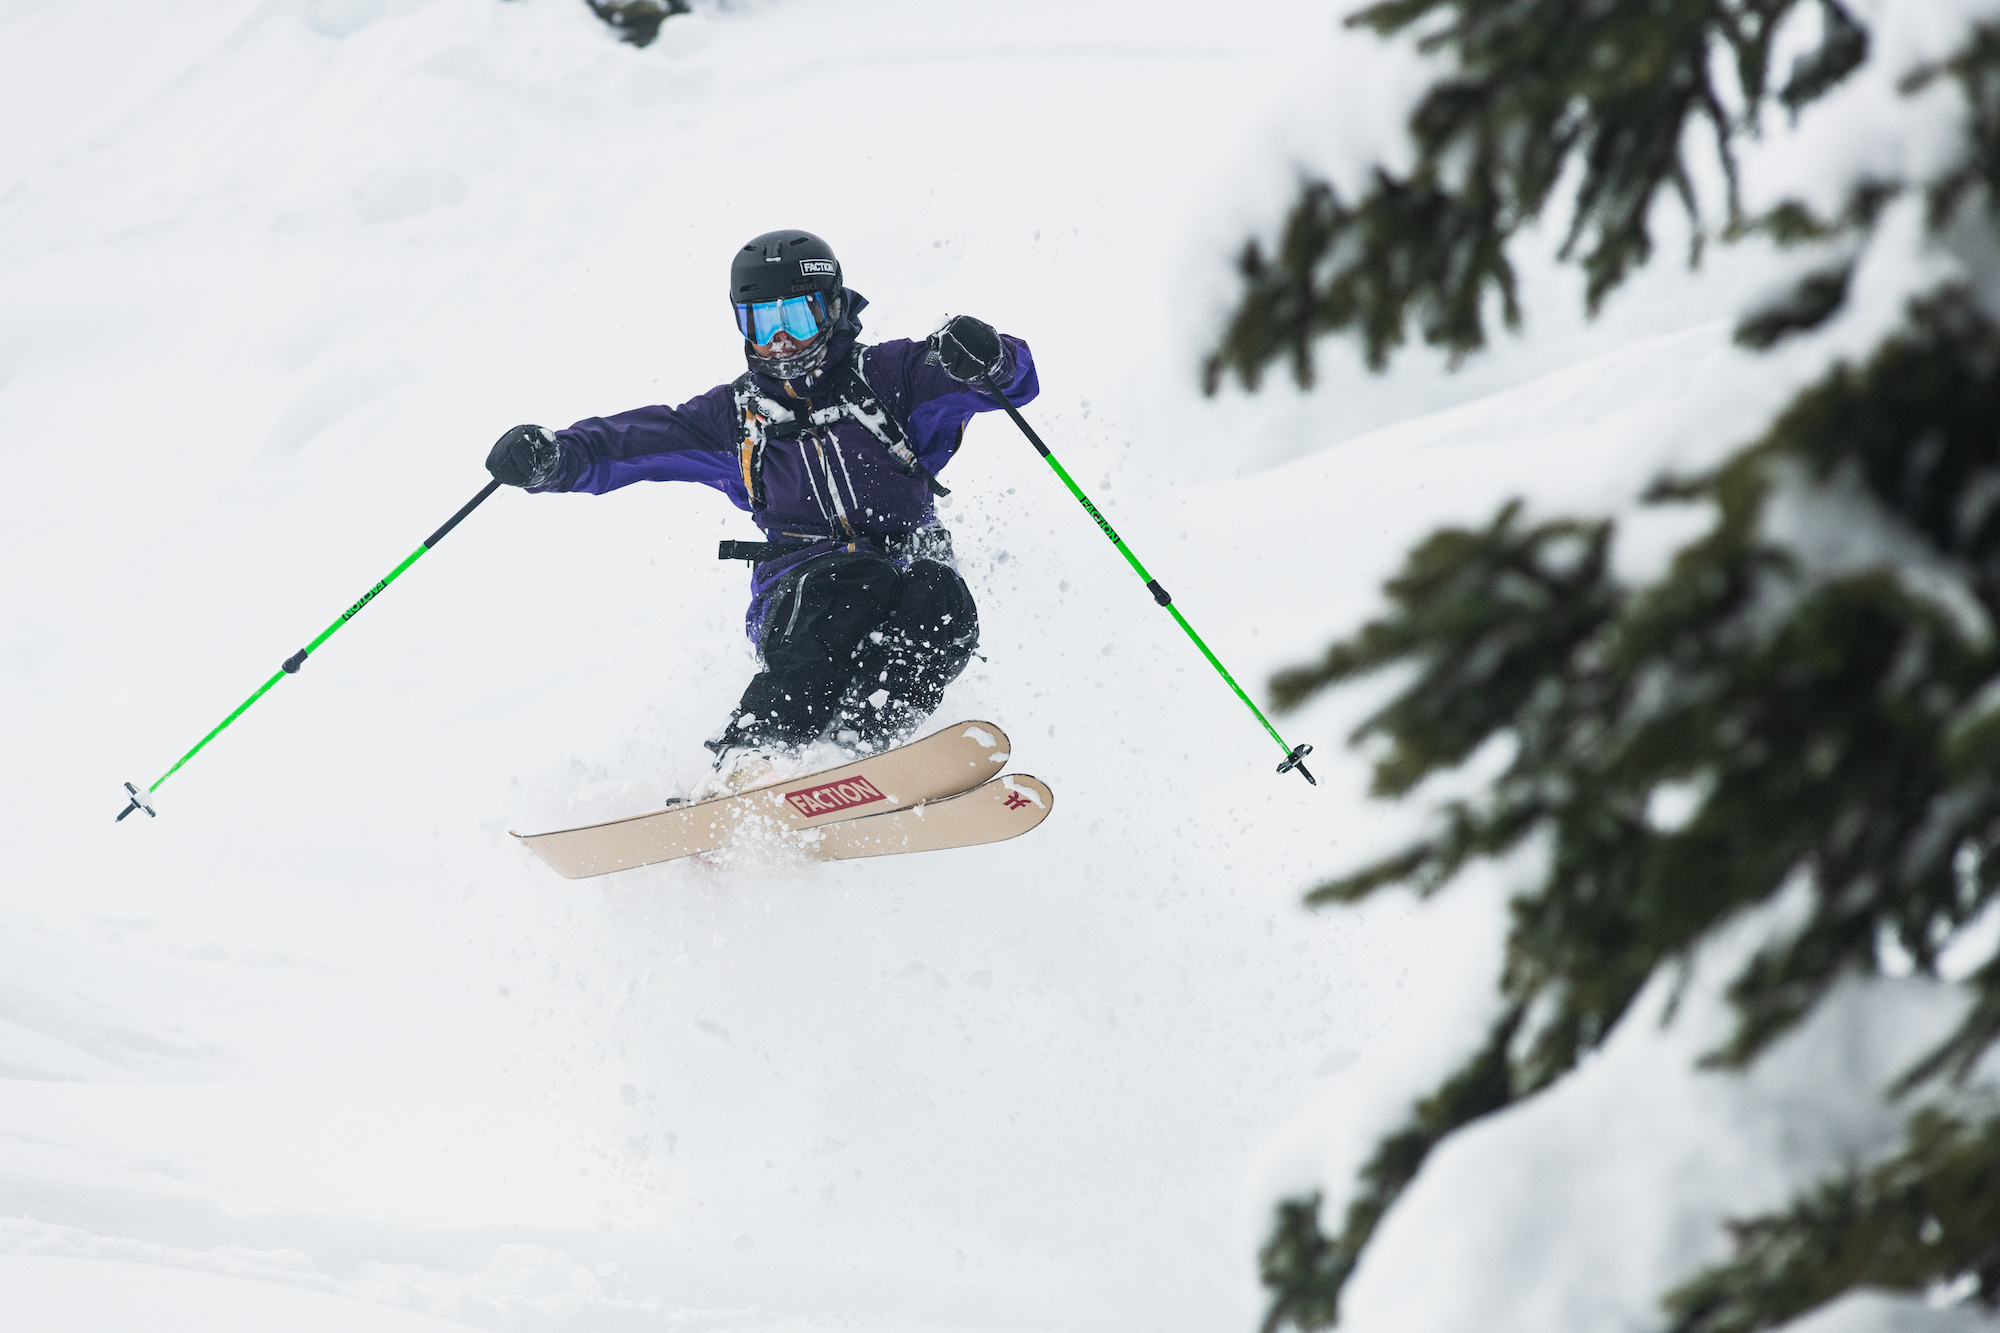 made in voyage skier mid air